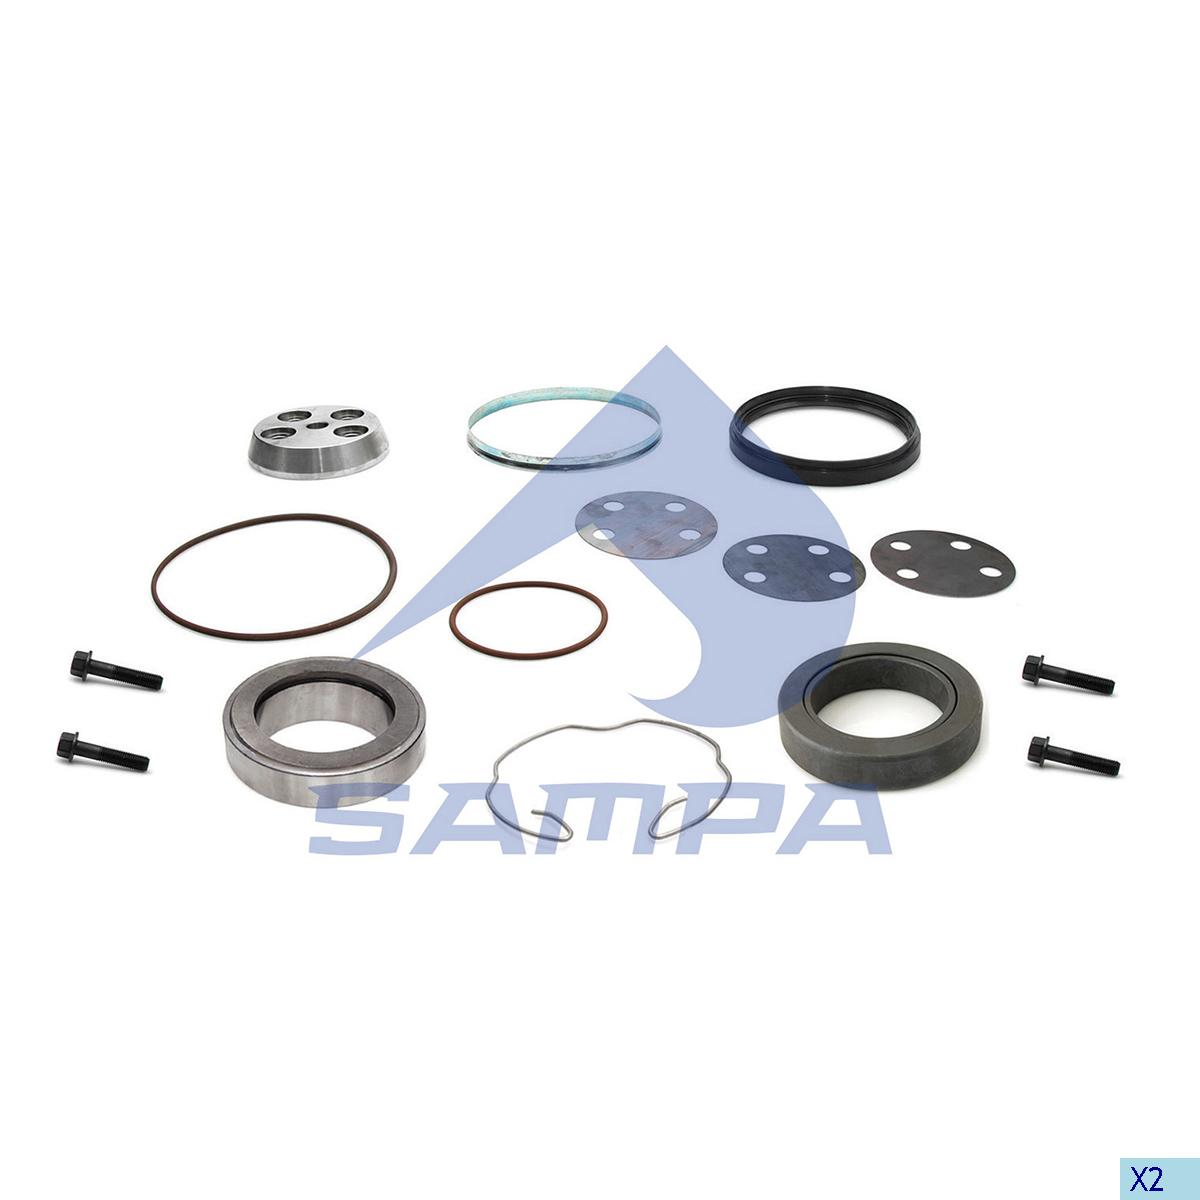 Repair Kit, Bogie Suspension, Iveco, Suspension